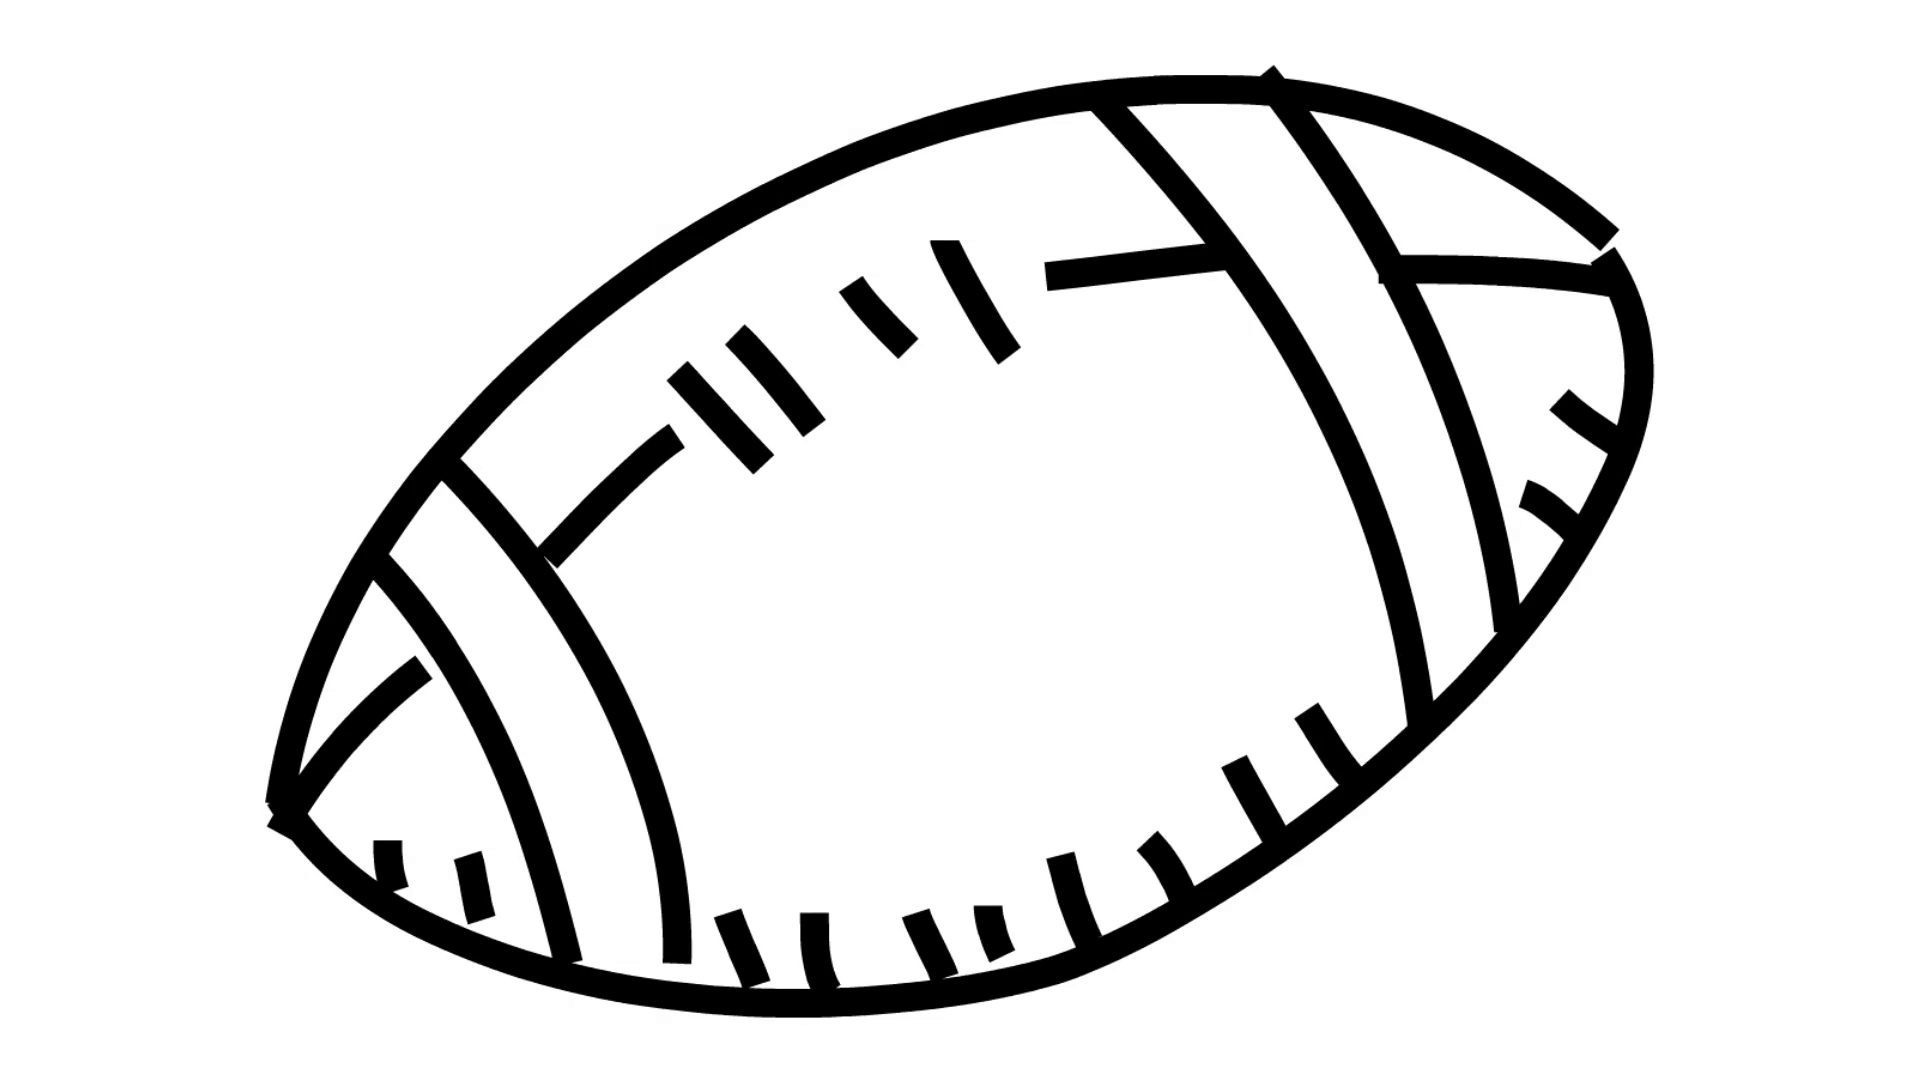 1920x1080 Football American Foot Ball Rugby Line Drawing Illustration